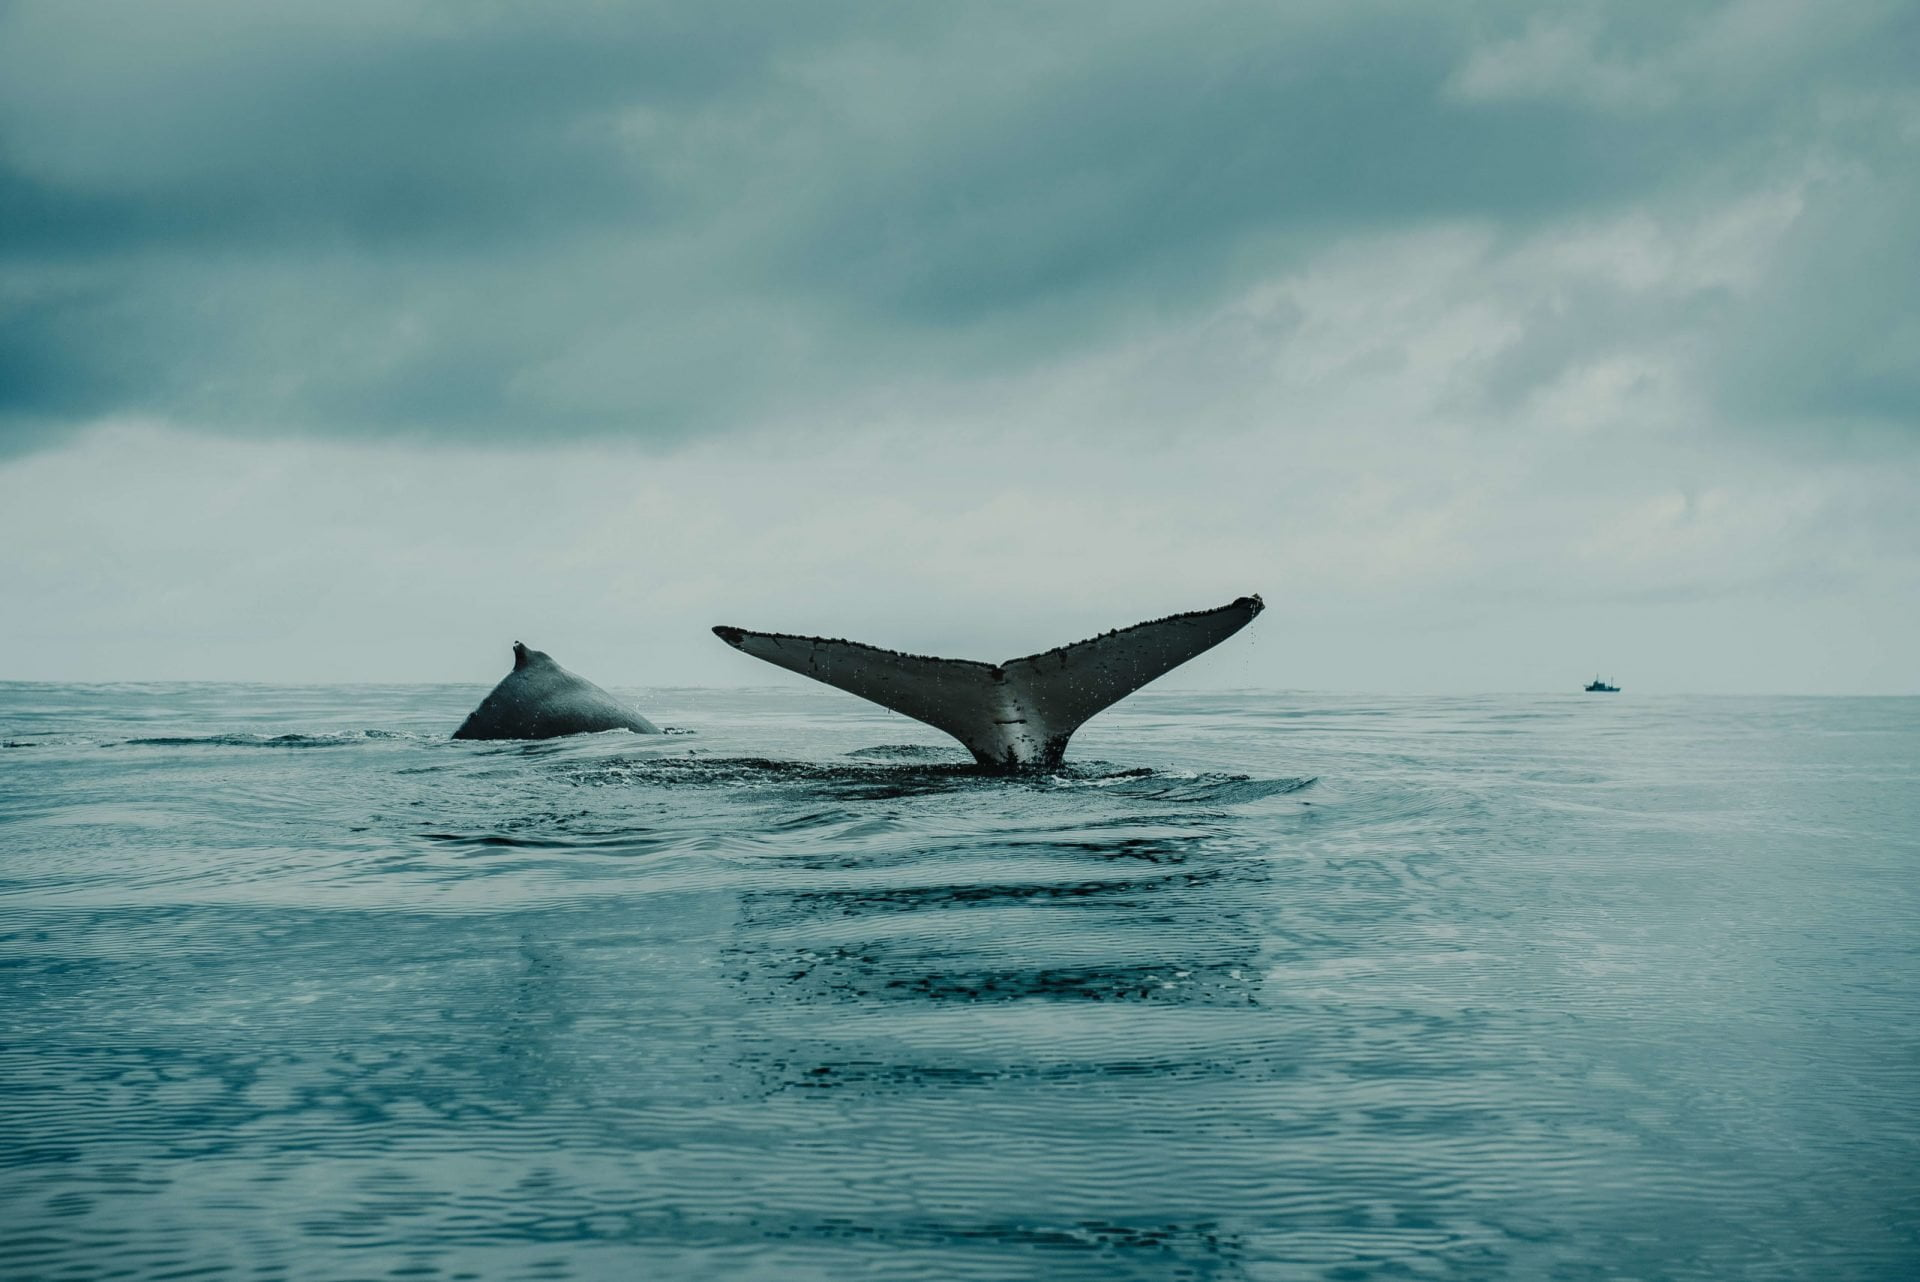 Report: Selling By Ethereum Whales Linked to ETH's Drop Below $200 10